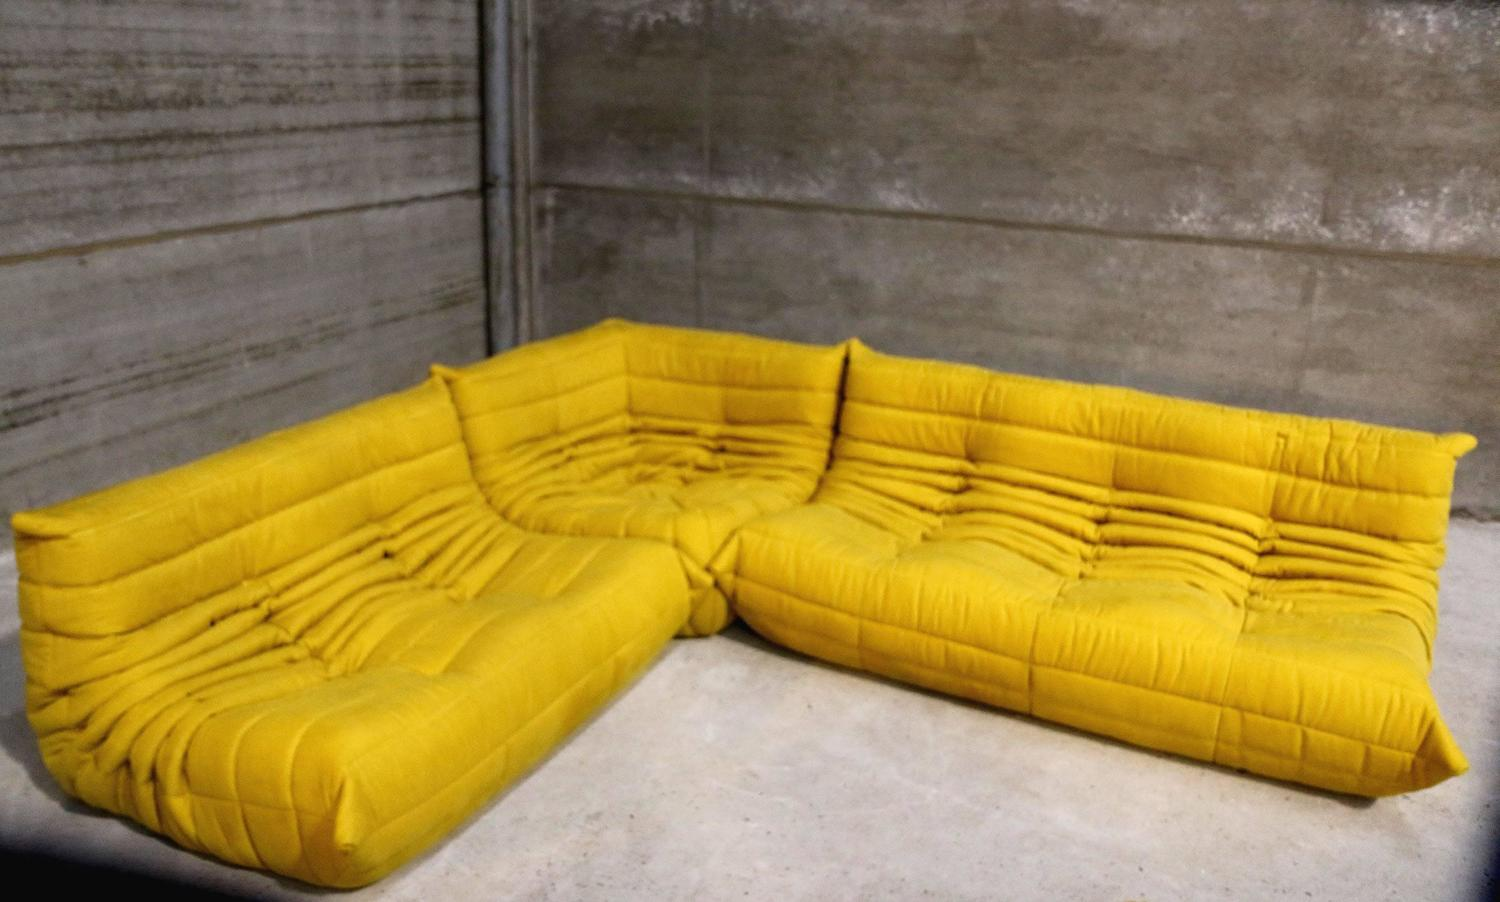 Togo Sofa Vintage Yellow Togo Sofa Set Michel Ducaroy For Ligne Roset